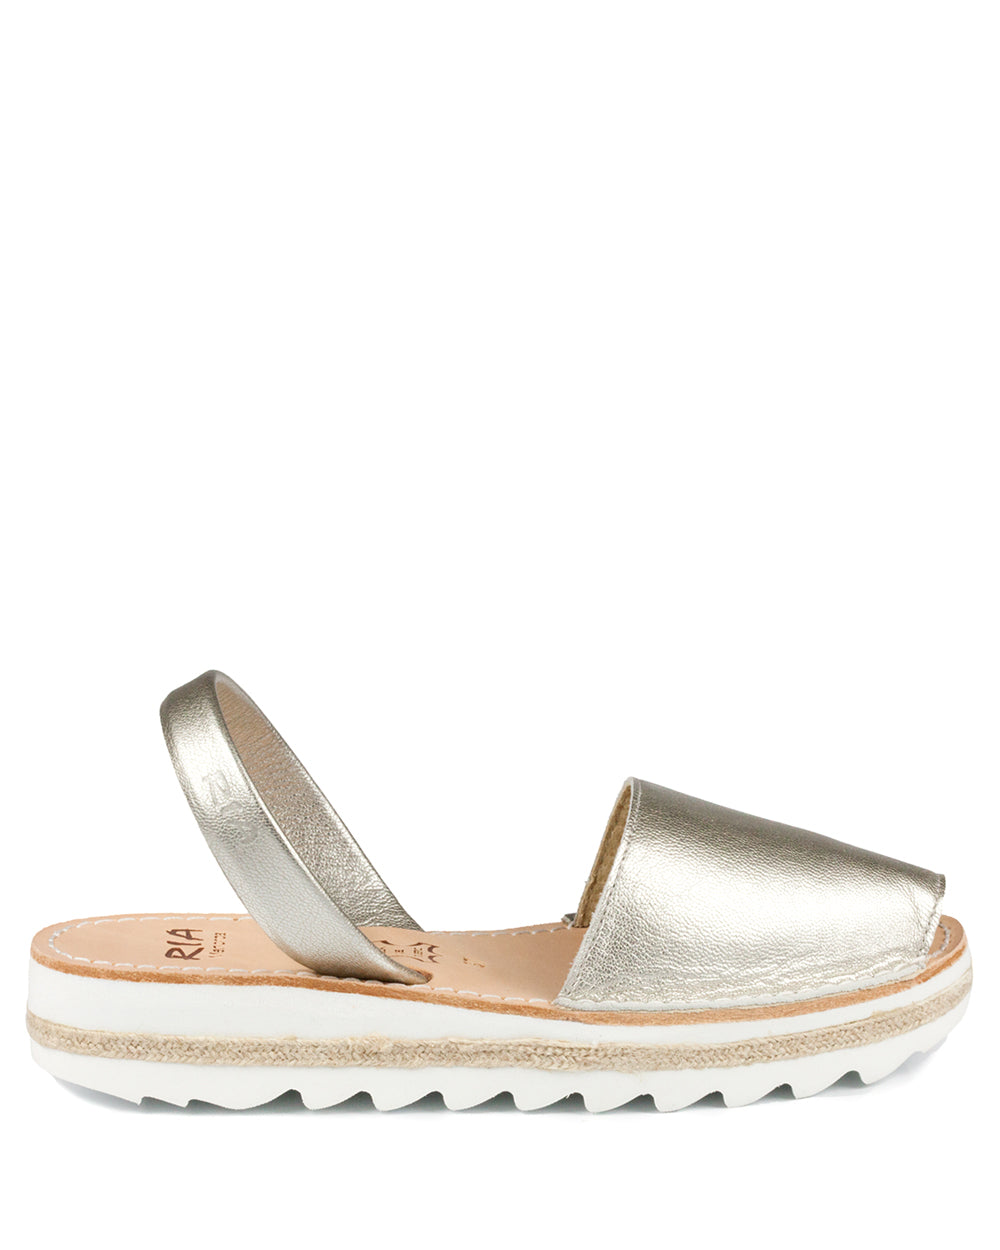 Menorcan Sandals Platinum Leather - The Espadrille Hut